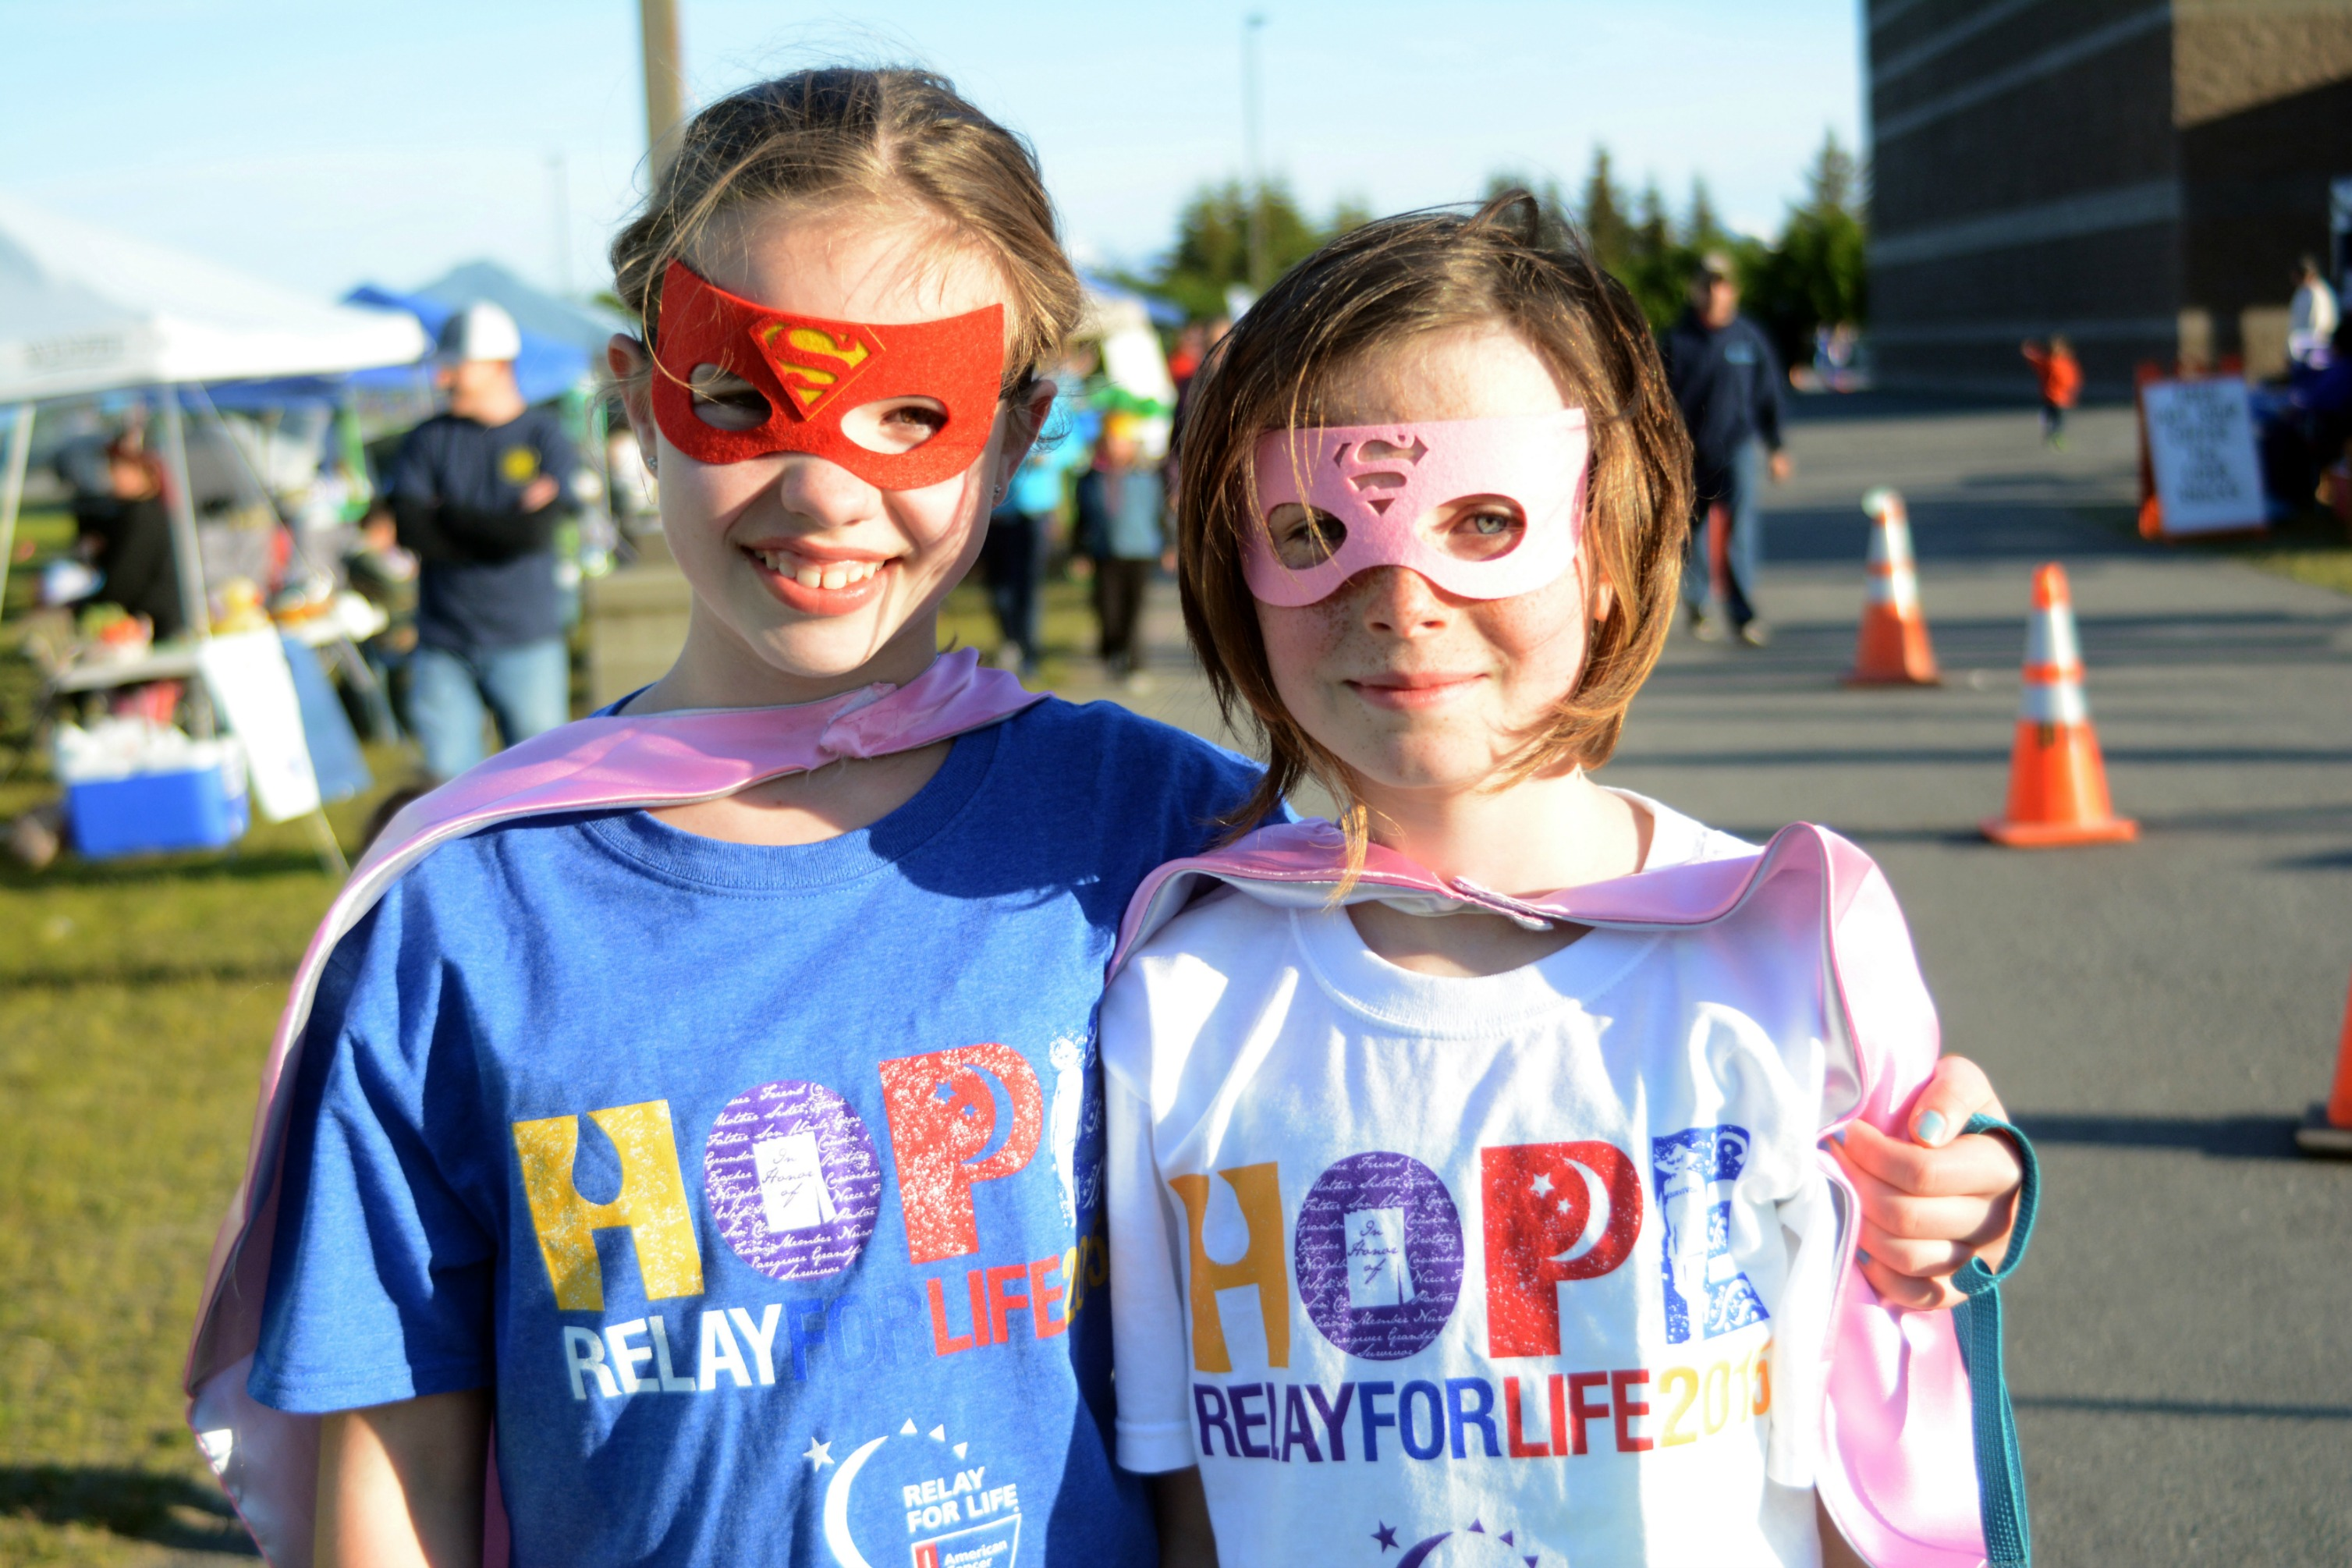 Sophia Park, left, and Neviya Reed of Team Puppies pause for a photo during the 2015 Relay for Life.